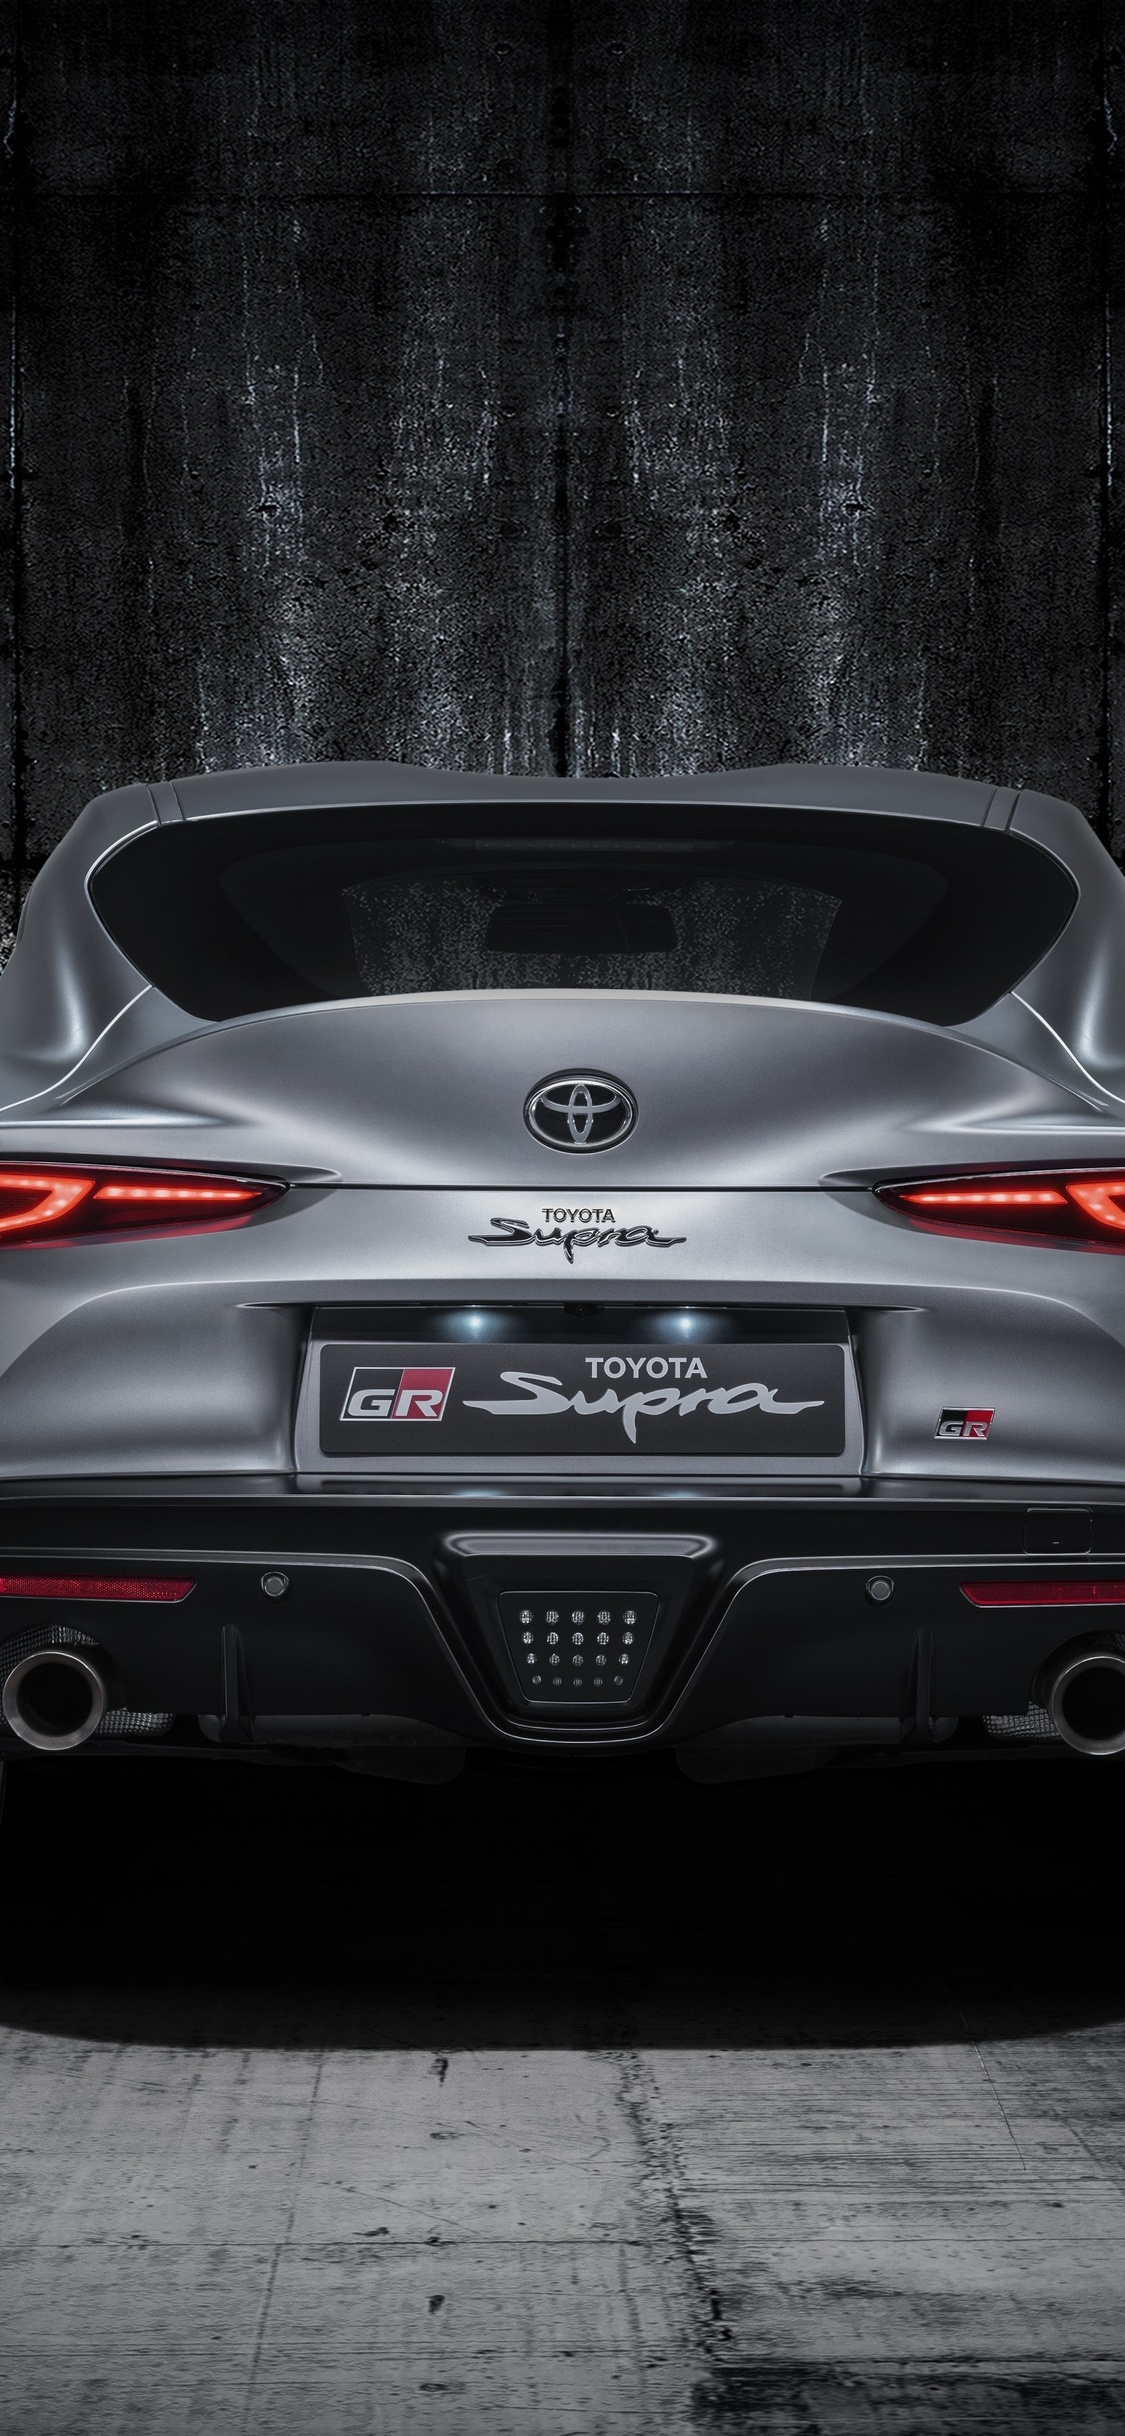 1125x2436 Toyota Supra Grey Studio Rear Iphone Xs Iphone 10 Iphone X Hd 4k Wallpapers Images Backgrounds Photos And Pictures